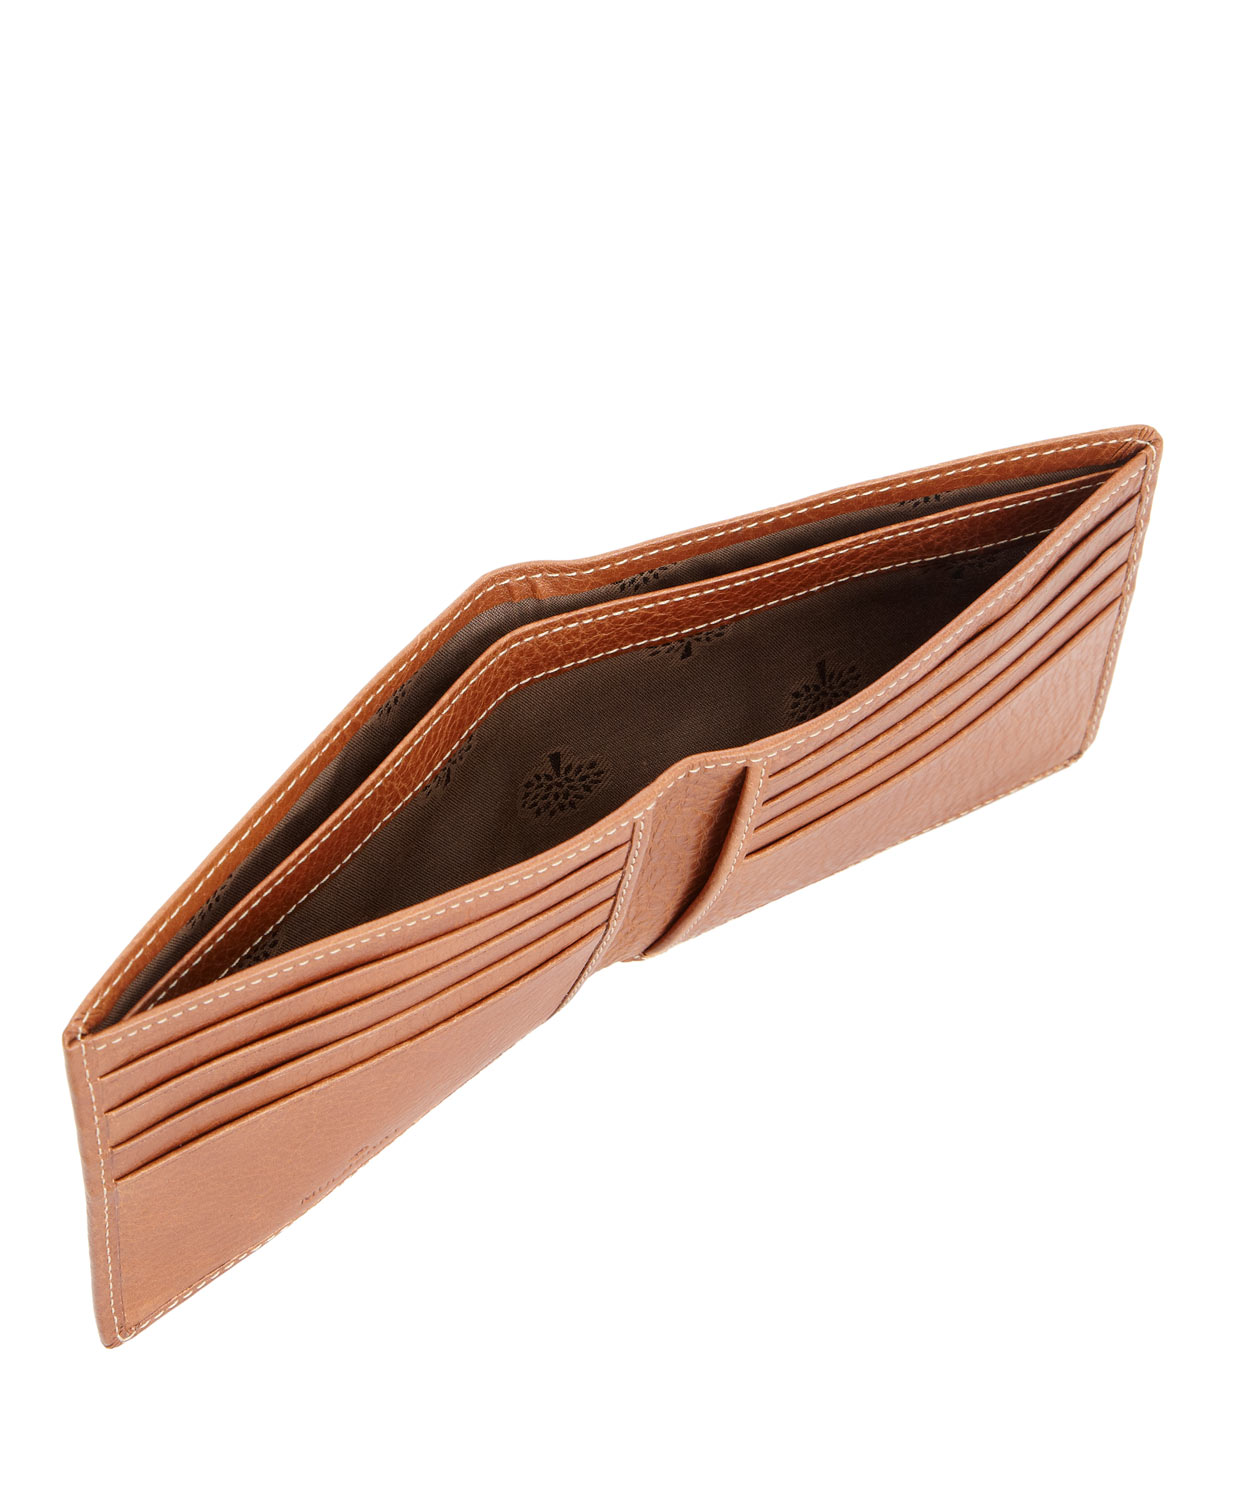 e79c49996a Lyst - Mulberry Tan Leather 8 Card Wallet in Orange for Men